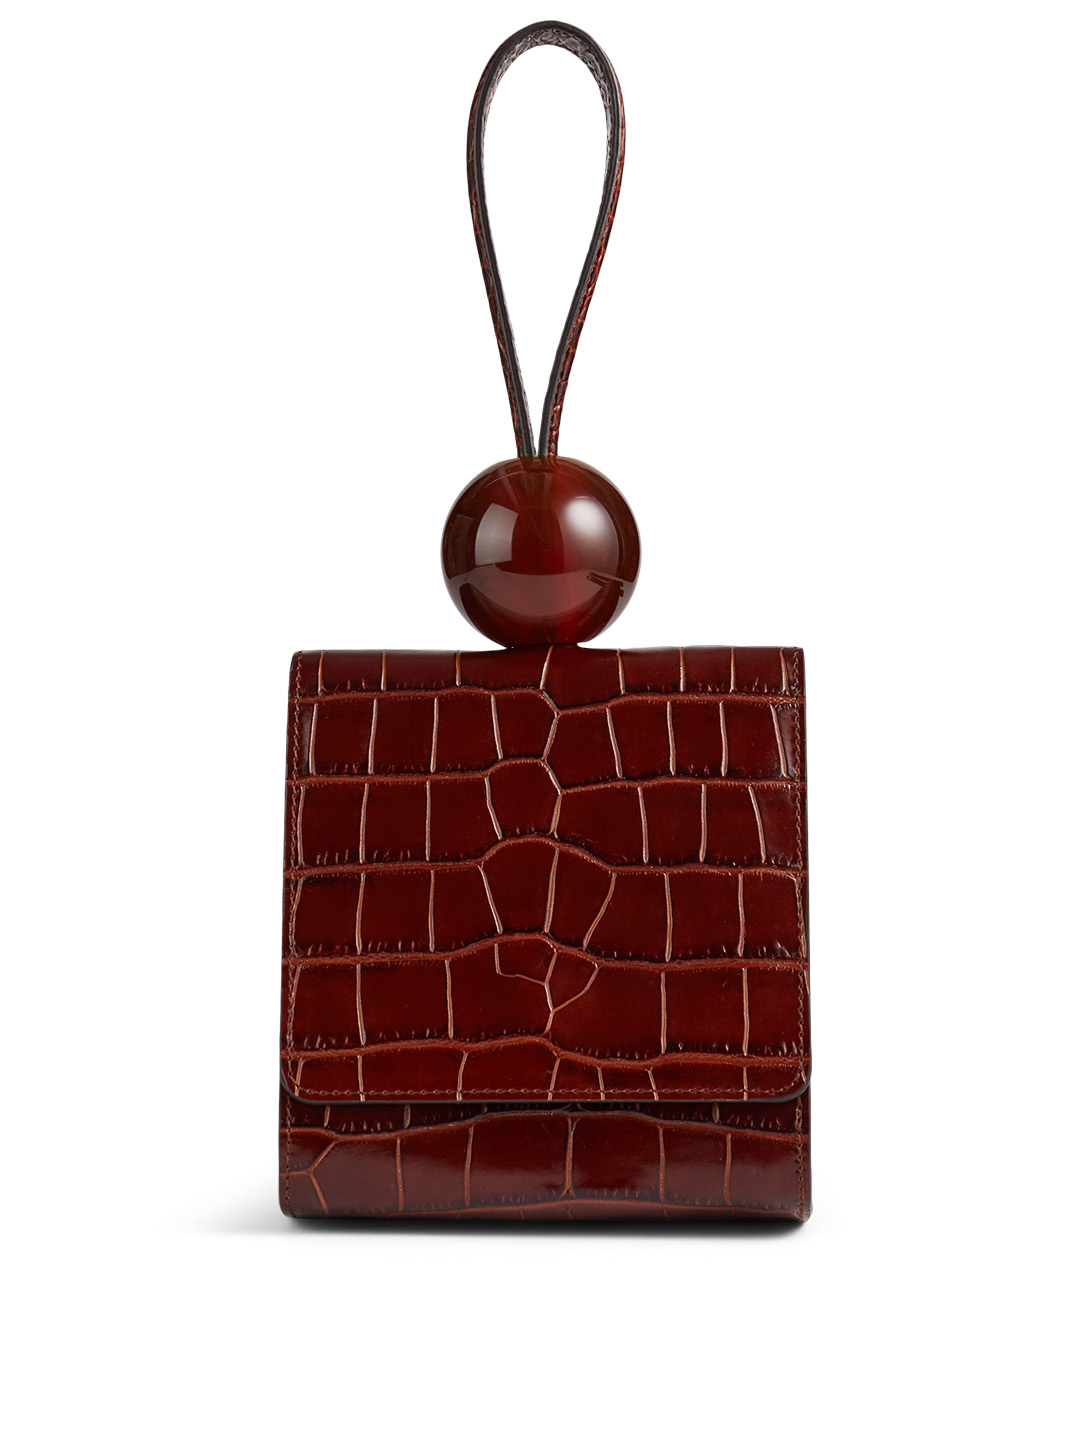 BY FAR Ball Croc-Embossed Leather Bag Women's Brown